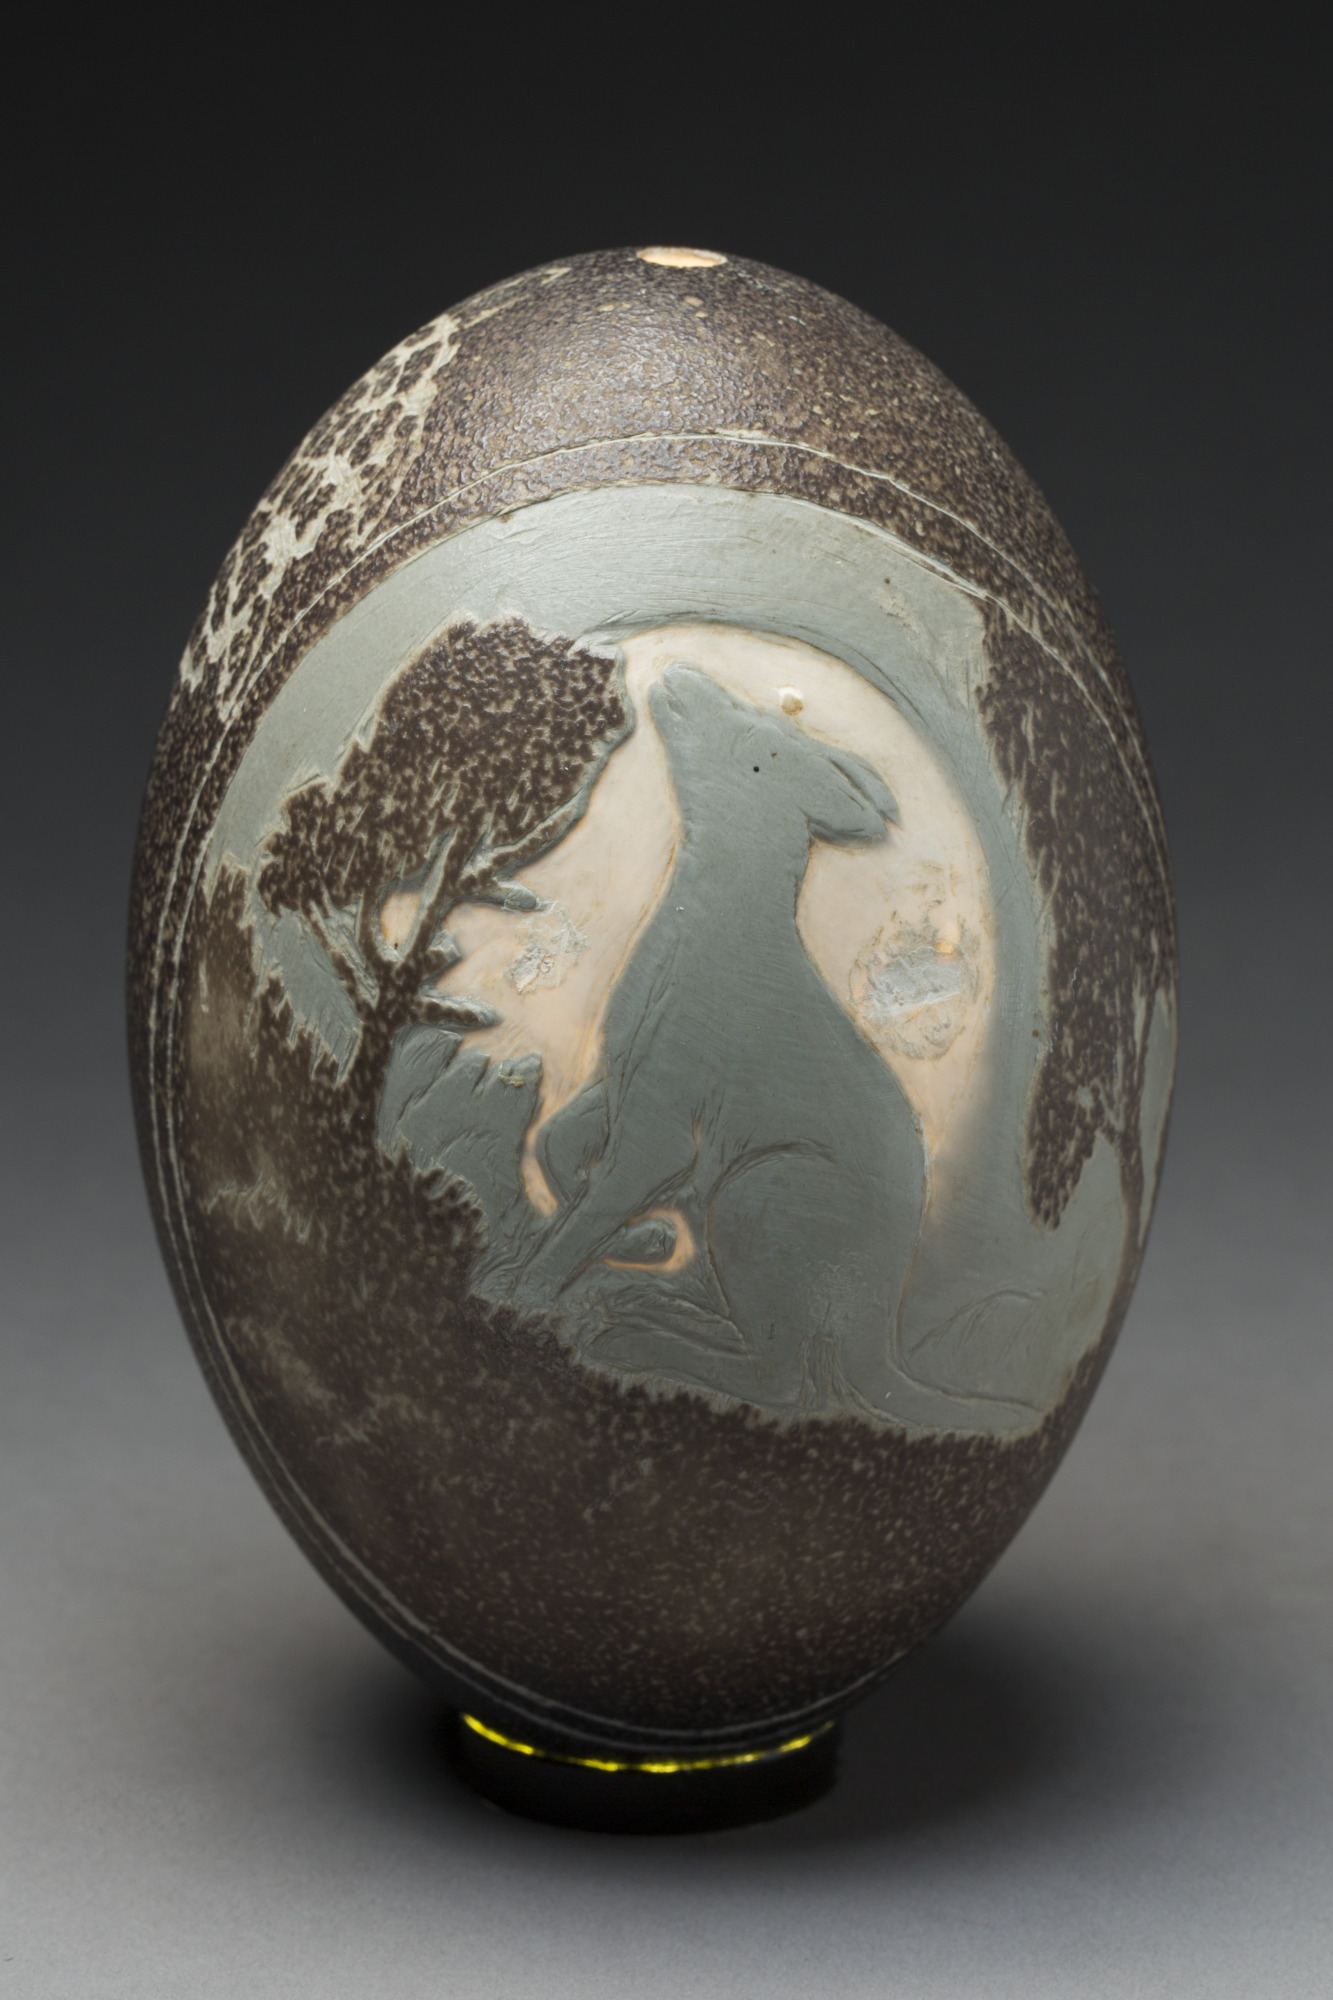 Emu egg carved with image of a dingo and possum, by Bill Reid.